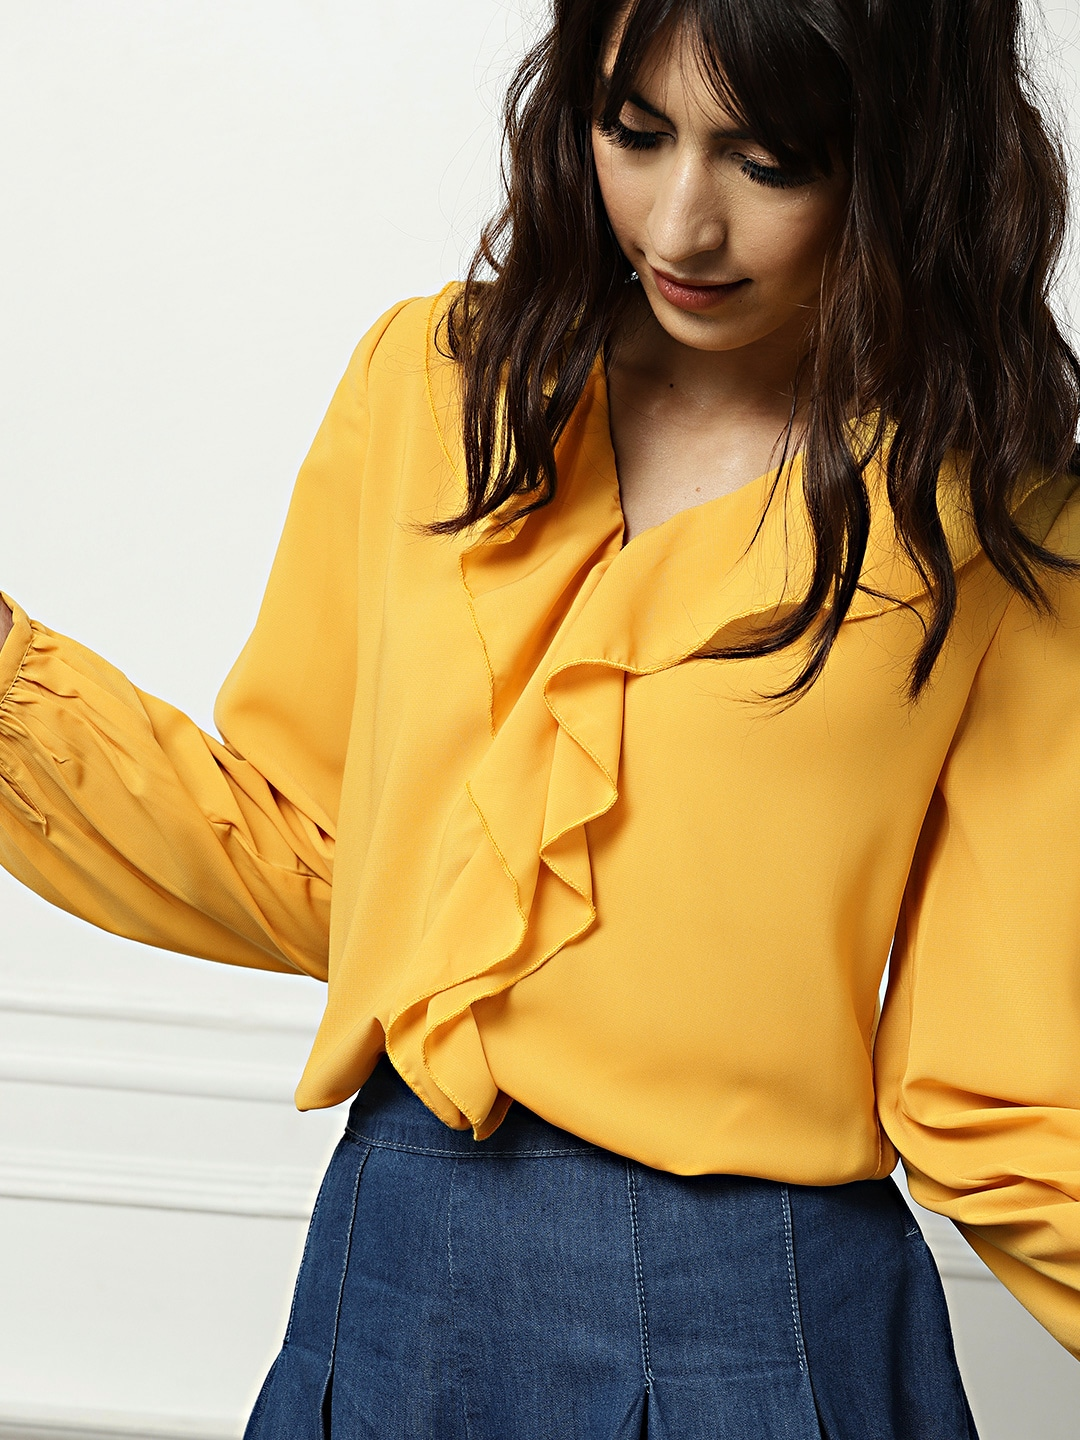 bd15cc1112a918 Mustard Yellow Tops - Buy Mustard Yellow Tops online in India